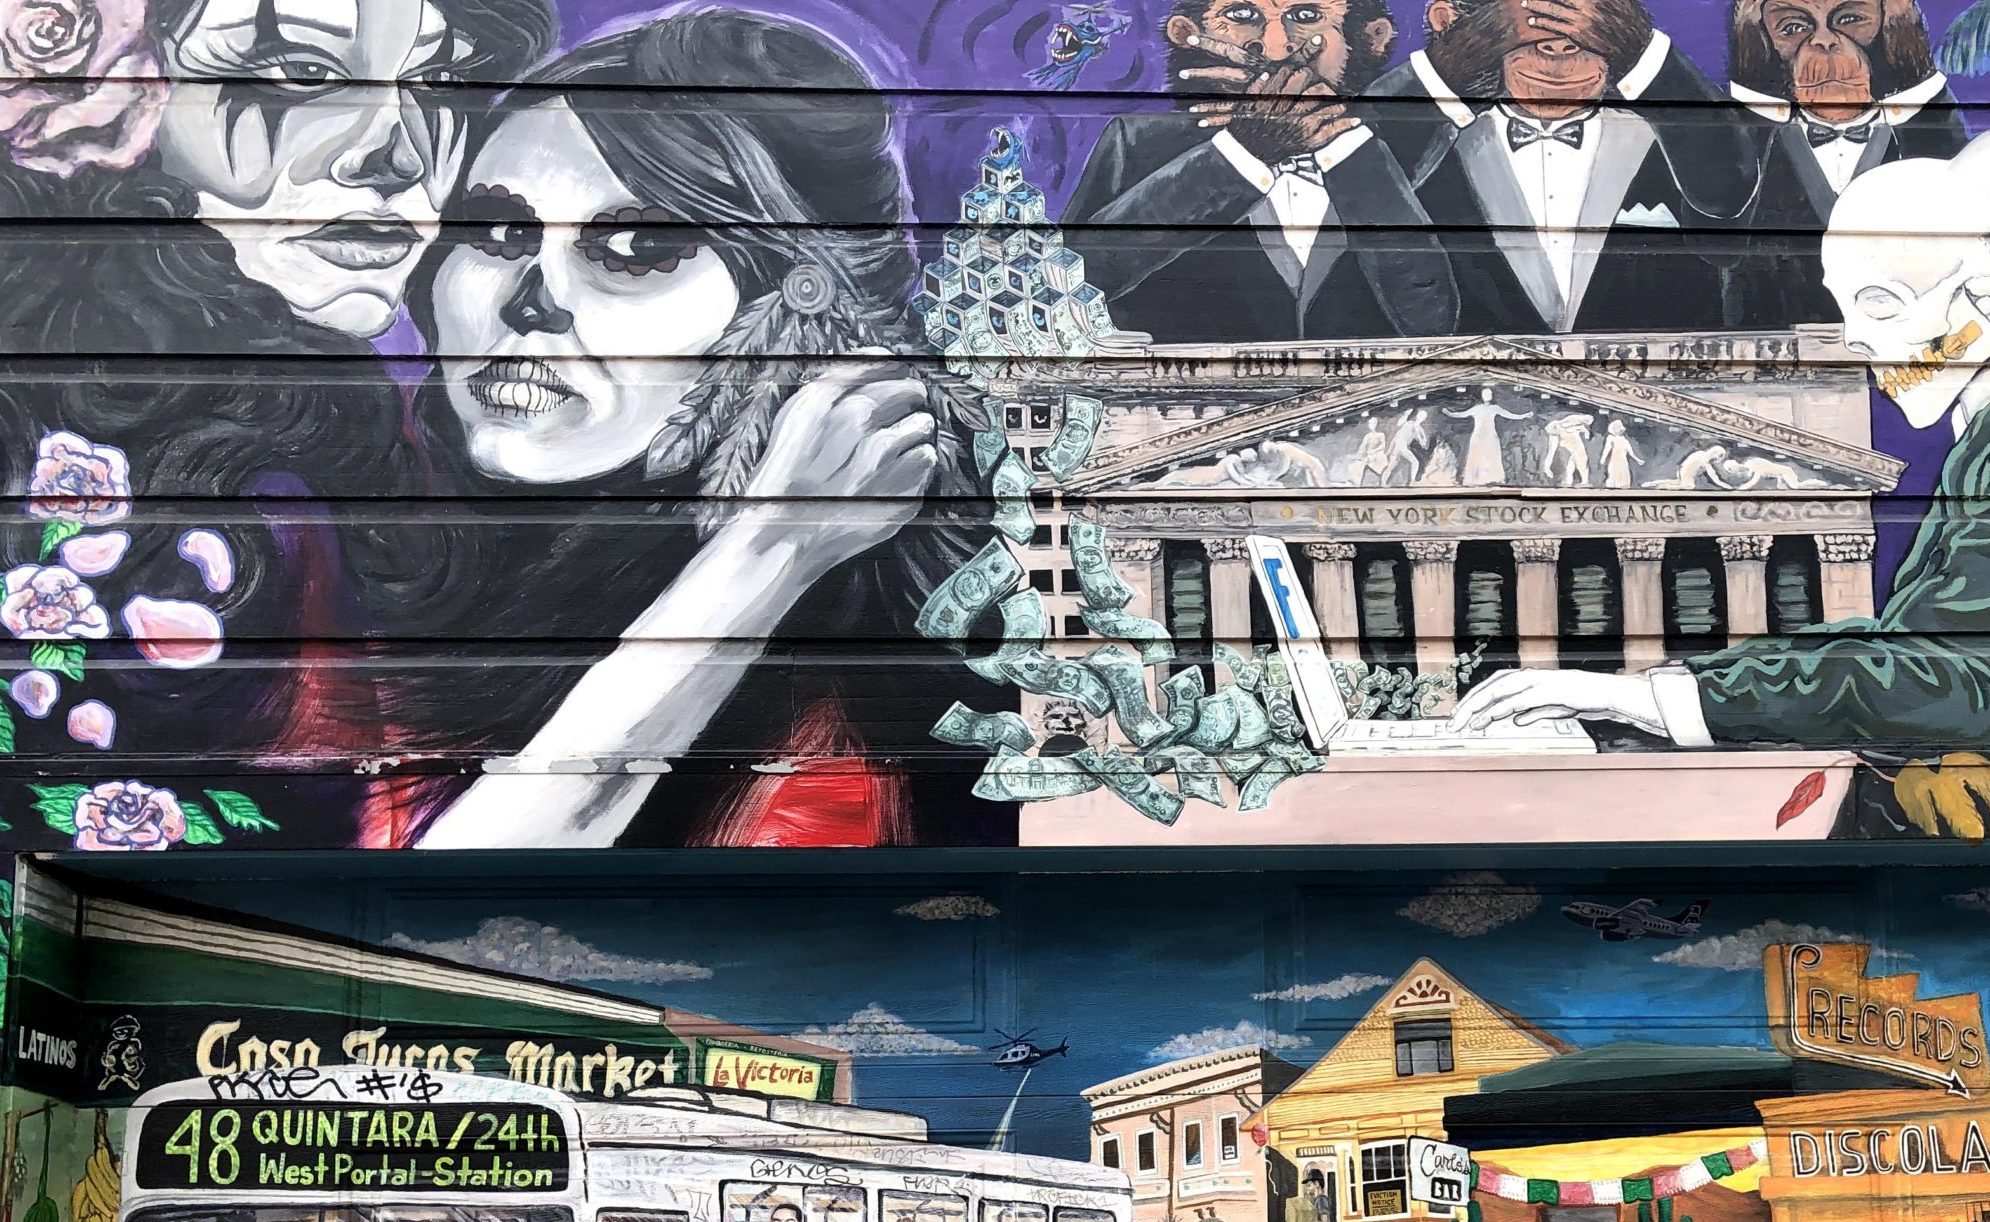 Mission District murals with Latino influence